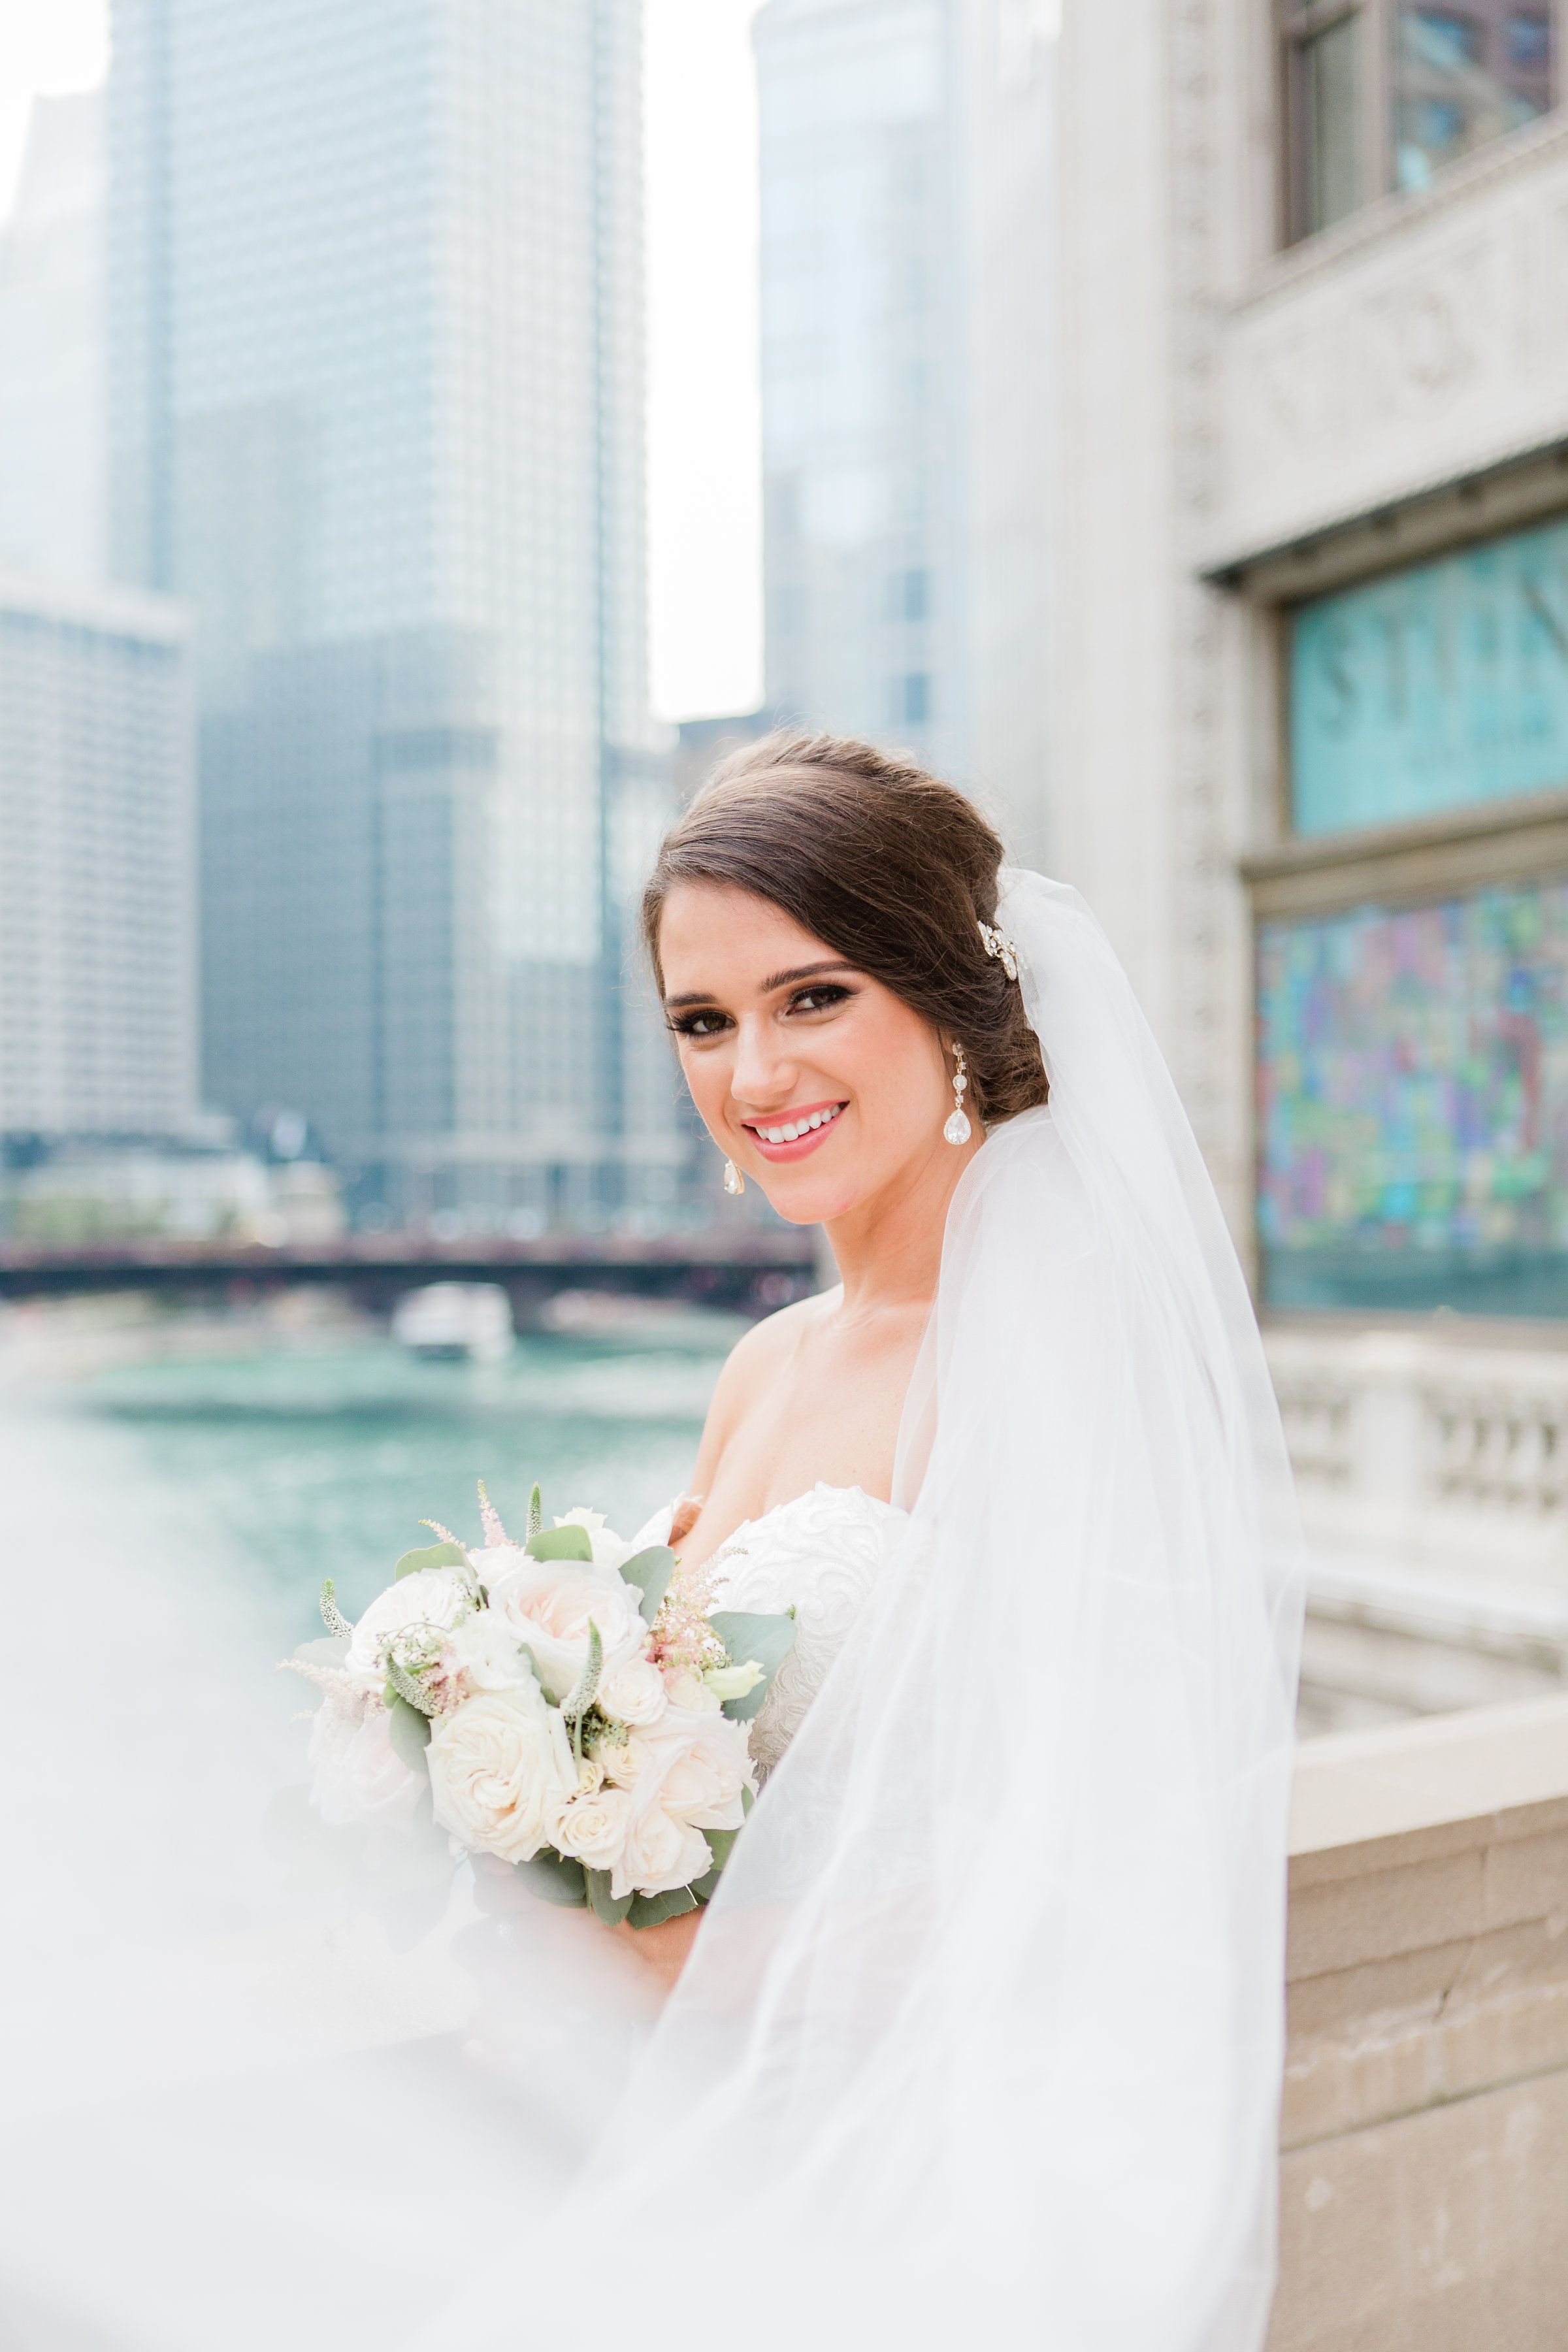 Tips for Posing for Wedding Photos Photography by Lauryn (1)